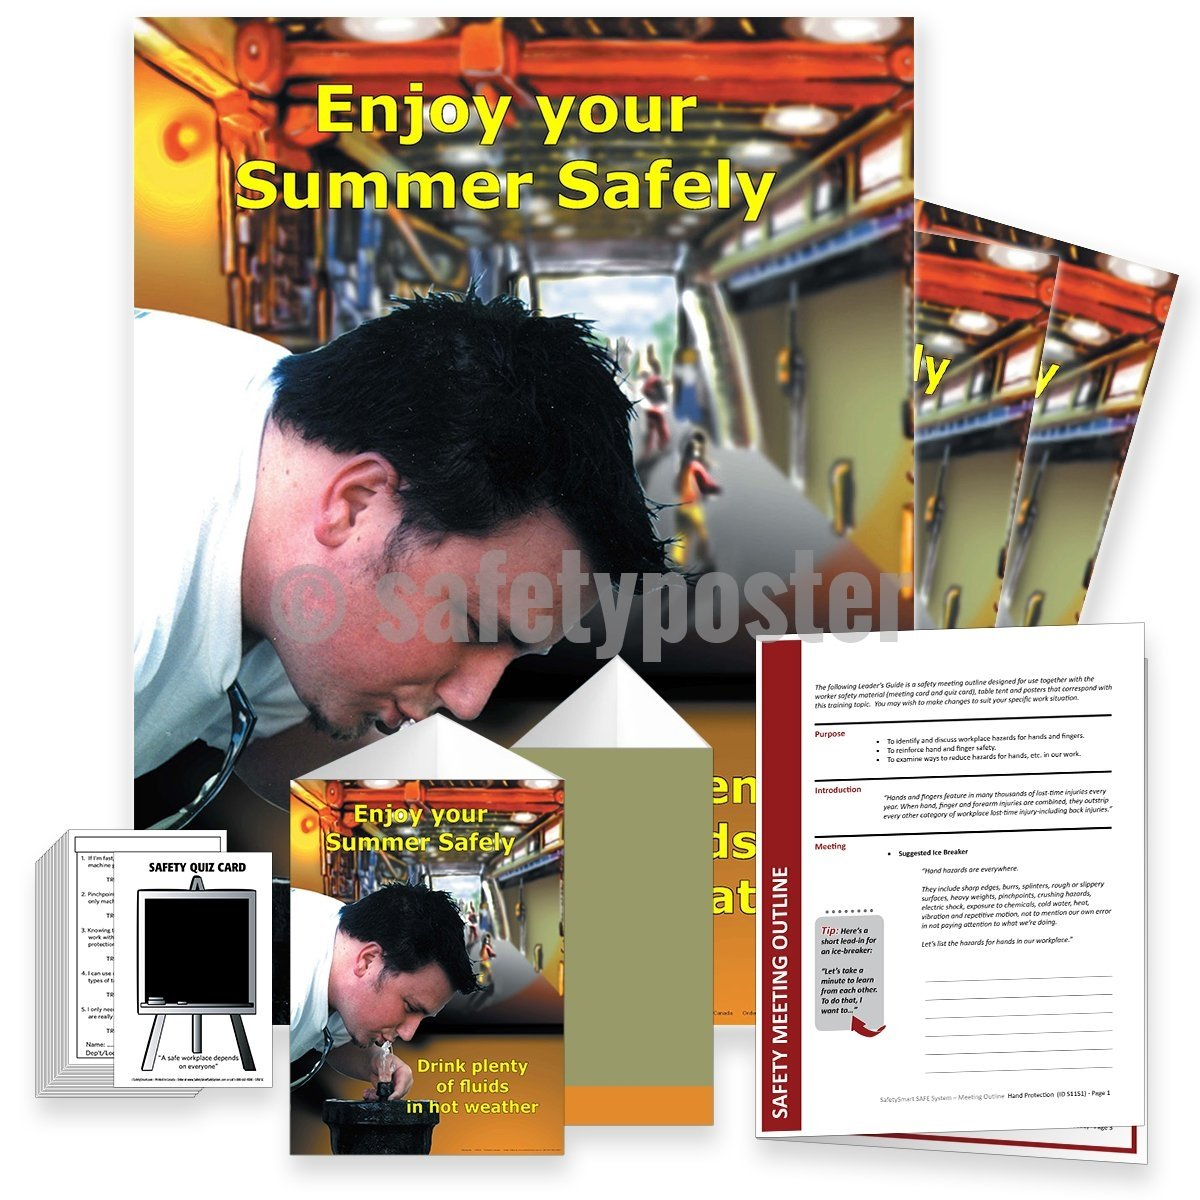 Safety Meeting Kit - Enjoy Your Summer Safely Kits